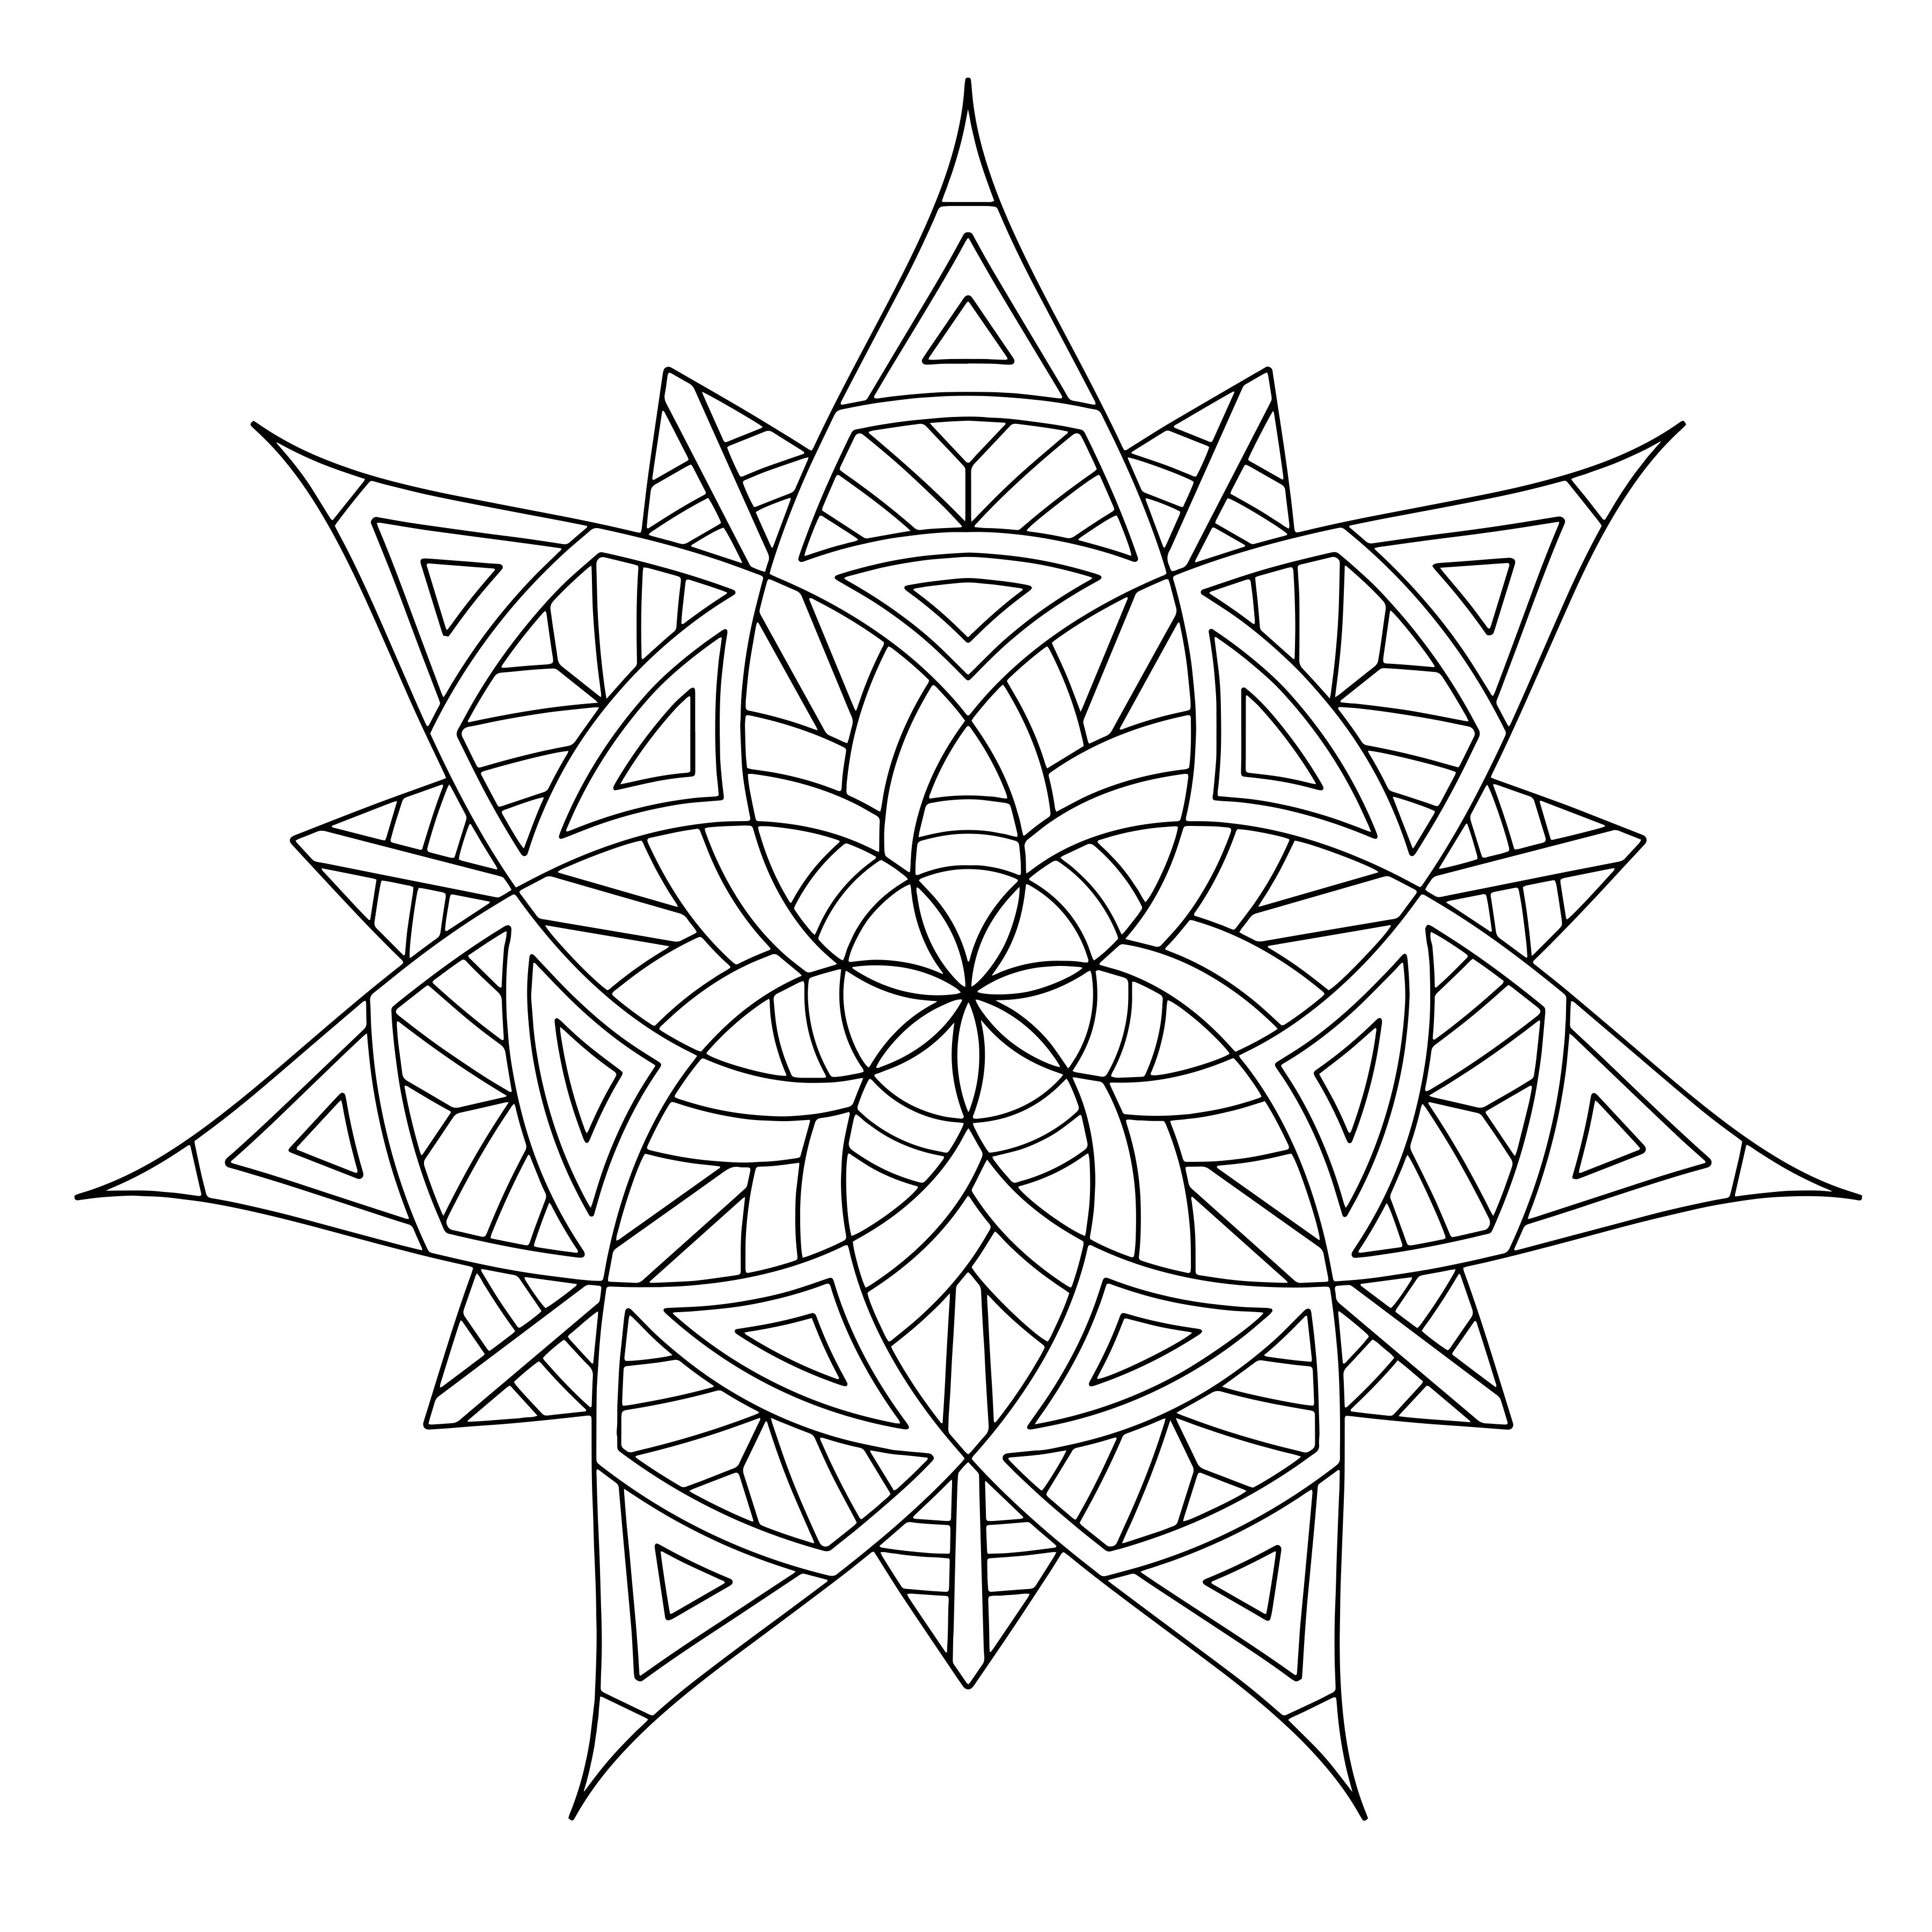 Best ideas about Coloring Pages For Adults Only . Save or Pin Free Printable Geometric Coloring Pages for Adults Now.